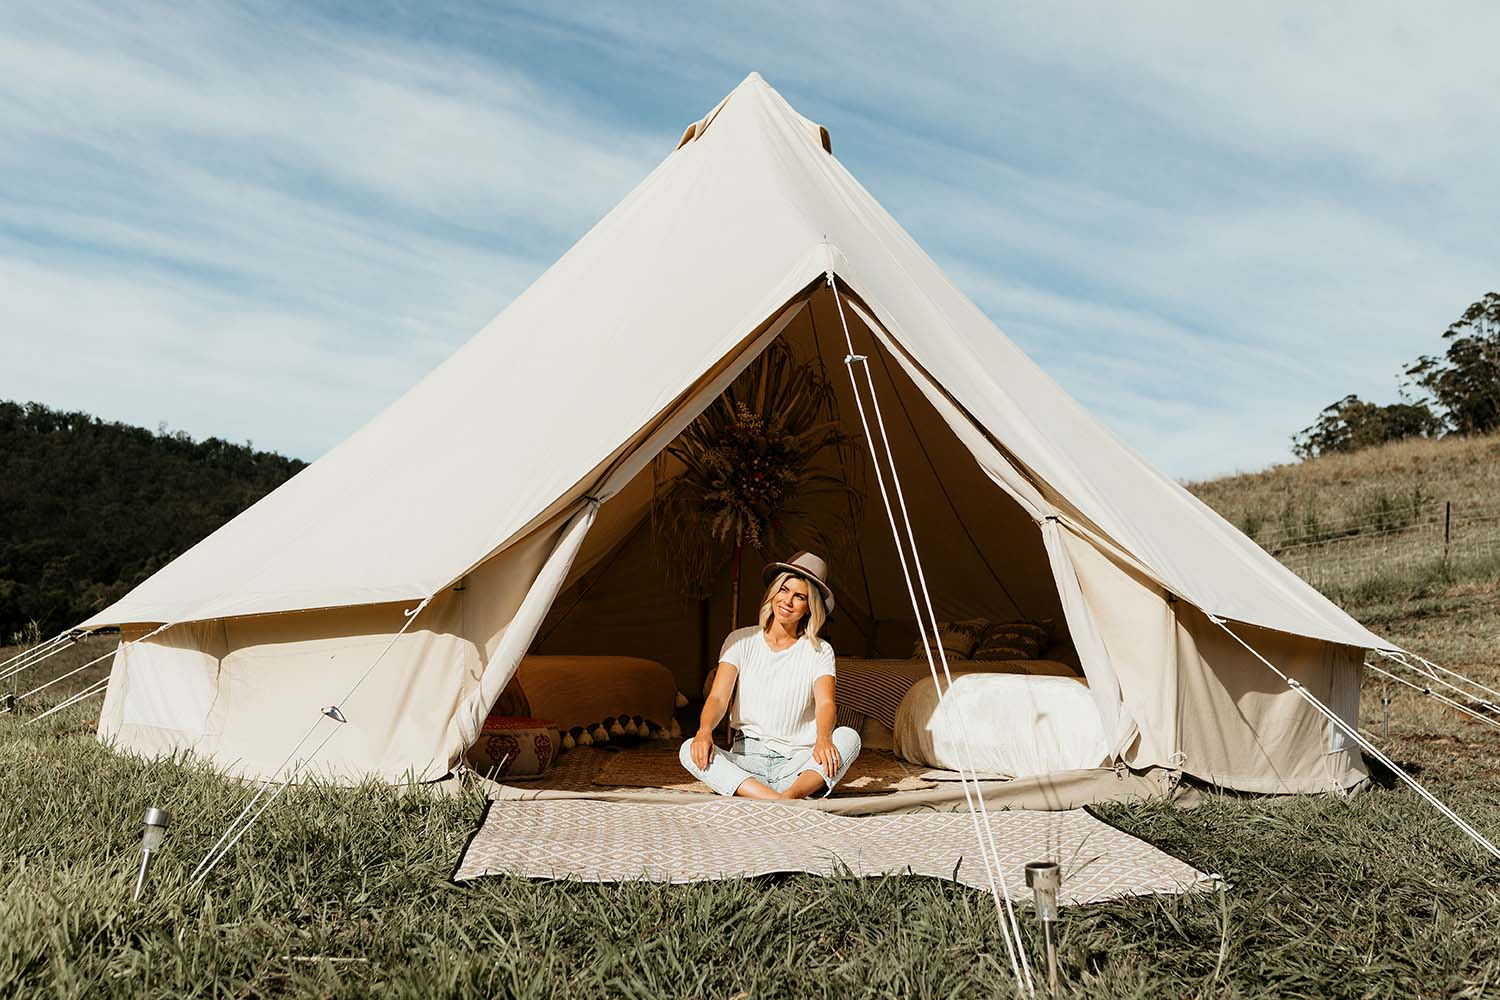 Fashion model sitting in front of a bell tent smiling - lifestyle photography - business branding photography - Nambucca valley photographer - Bellingen photographer - Coffs coast photographer